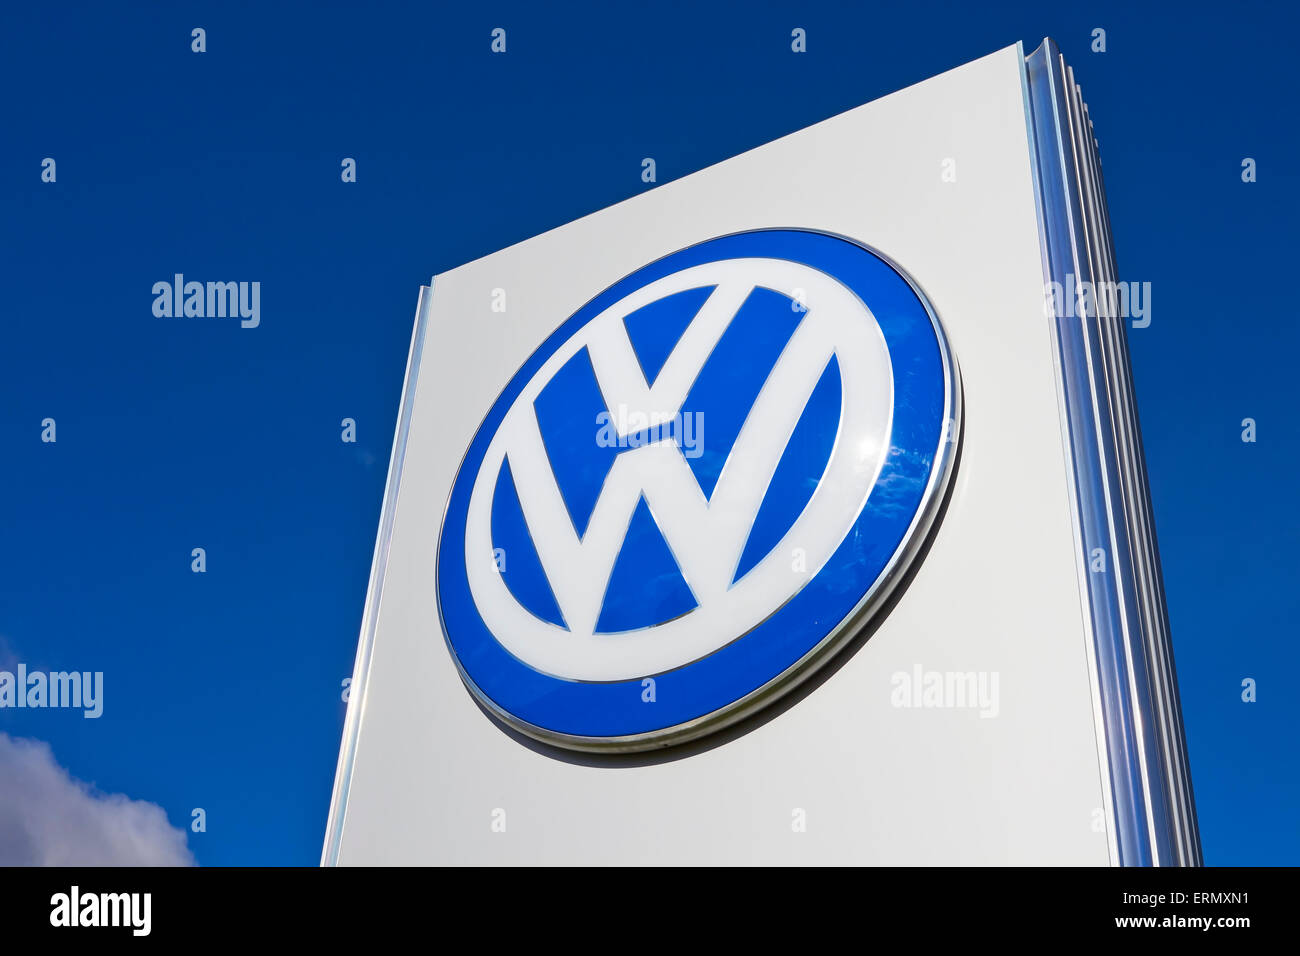 VW signboard - Stock Image